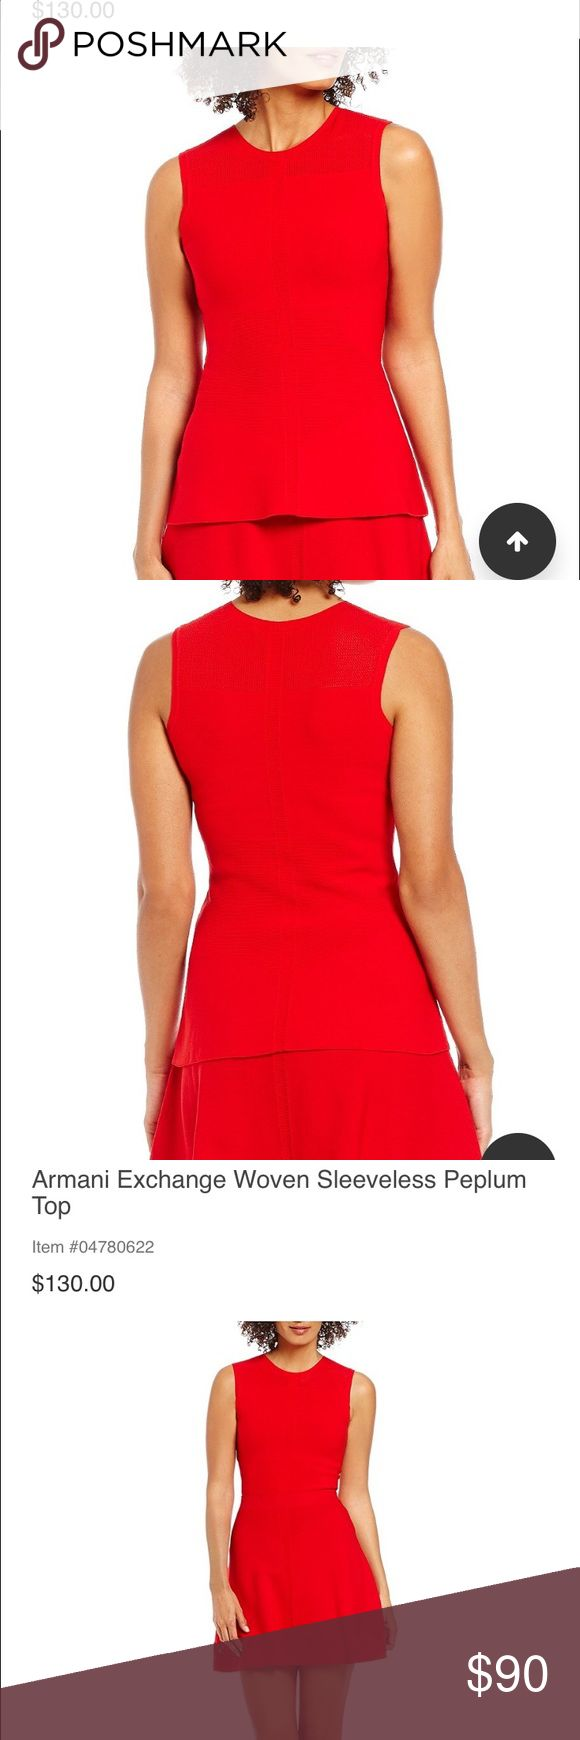 Armani exchange peplum top Great holiday shirt! Bright red and stretches, beautiful material! I have both pieces, separate listing for the skirt Armani Exchange Tops